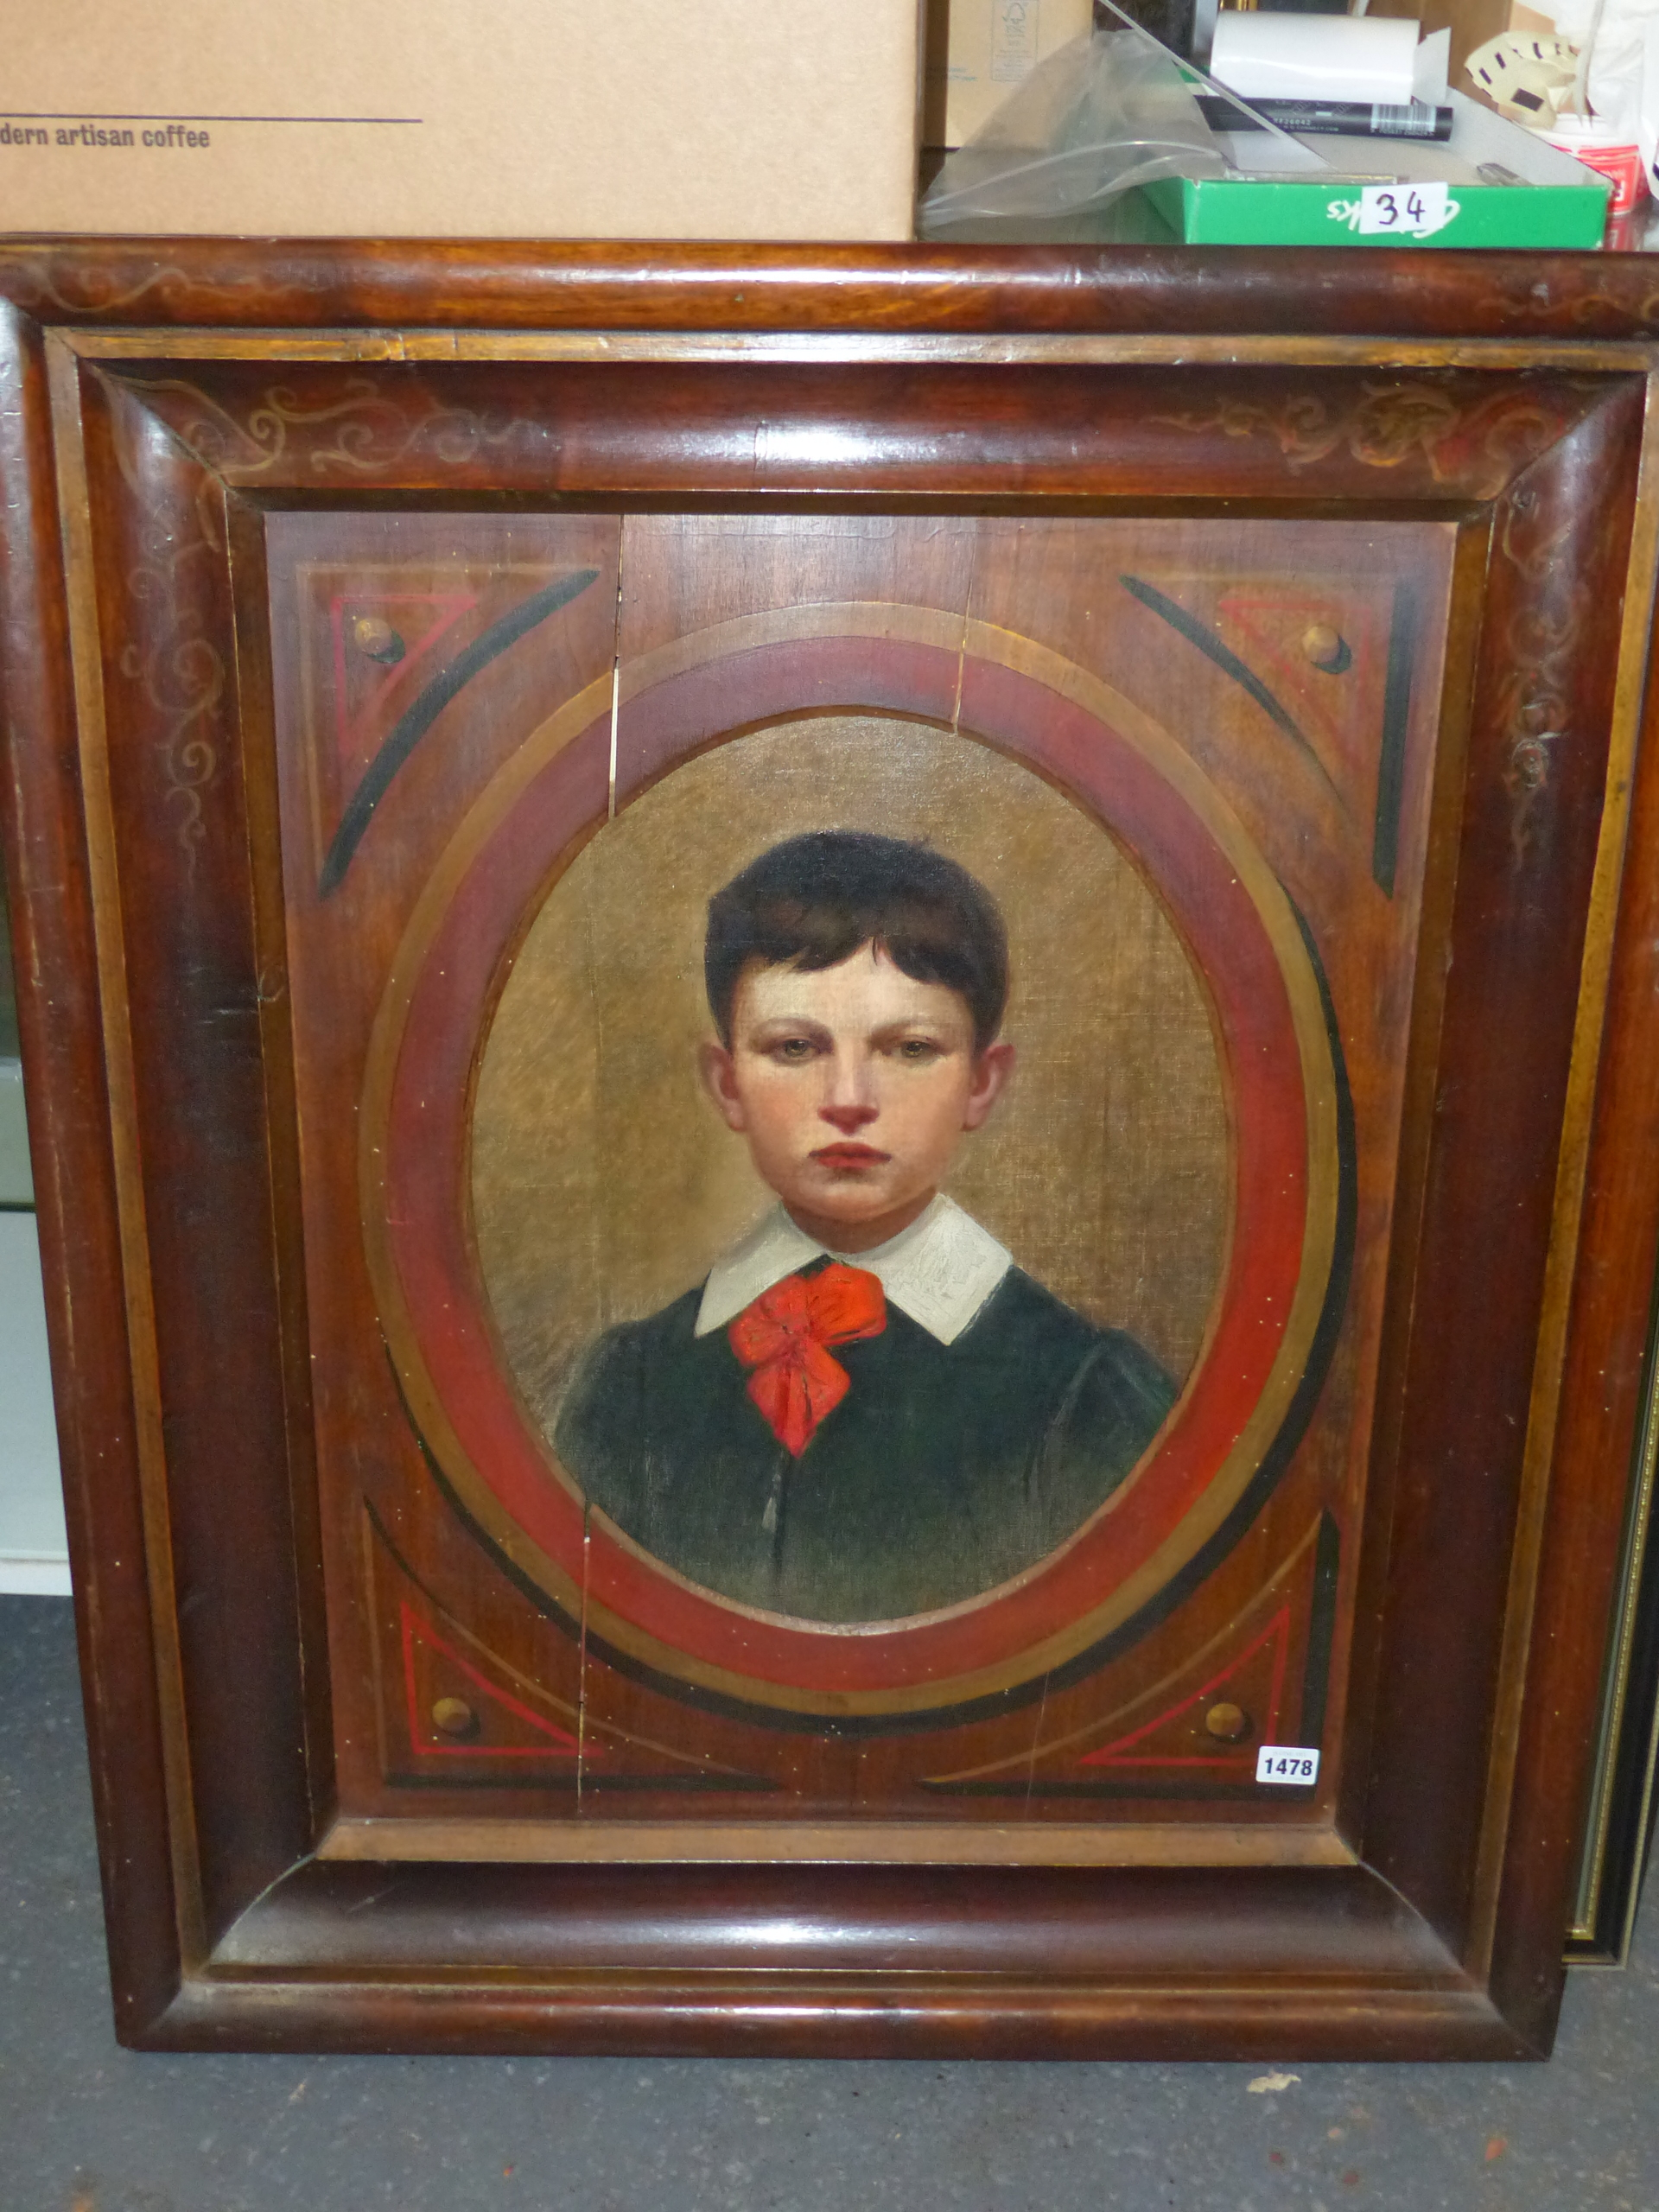 19th CENTURY CONTINENTAL SCHOOL FEIGNED OVAL PORTRAIT OF A BOY. OIL ON CANVAS DECORATIVE PAINTED - Image 2 of 7